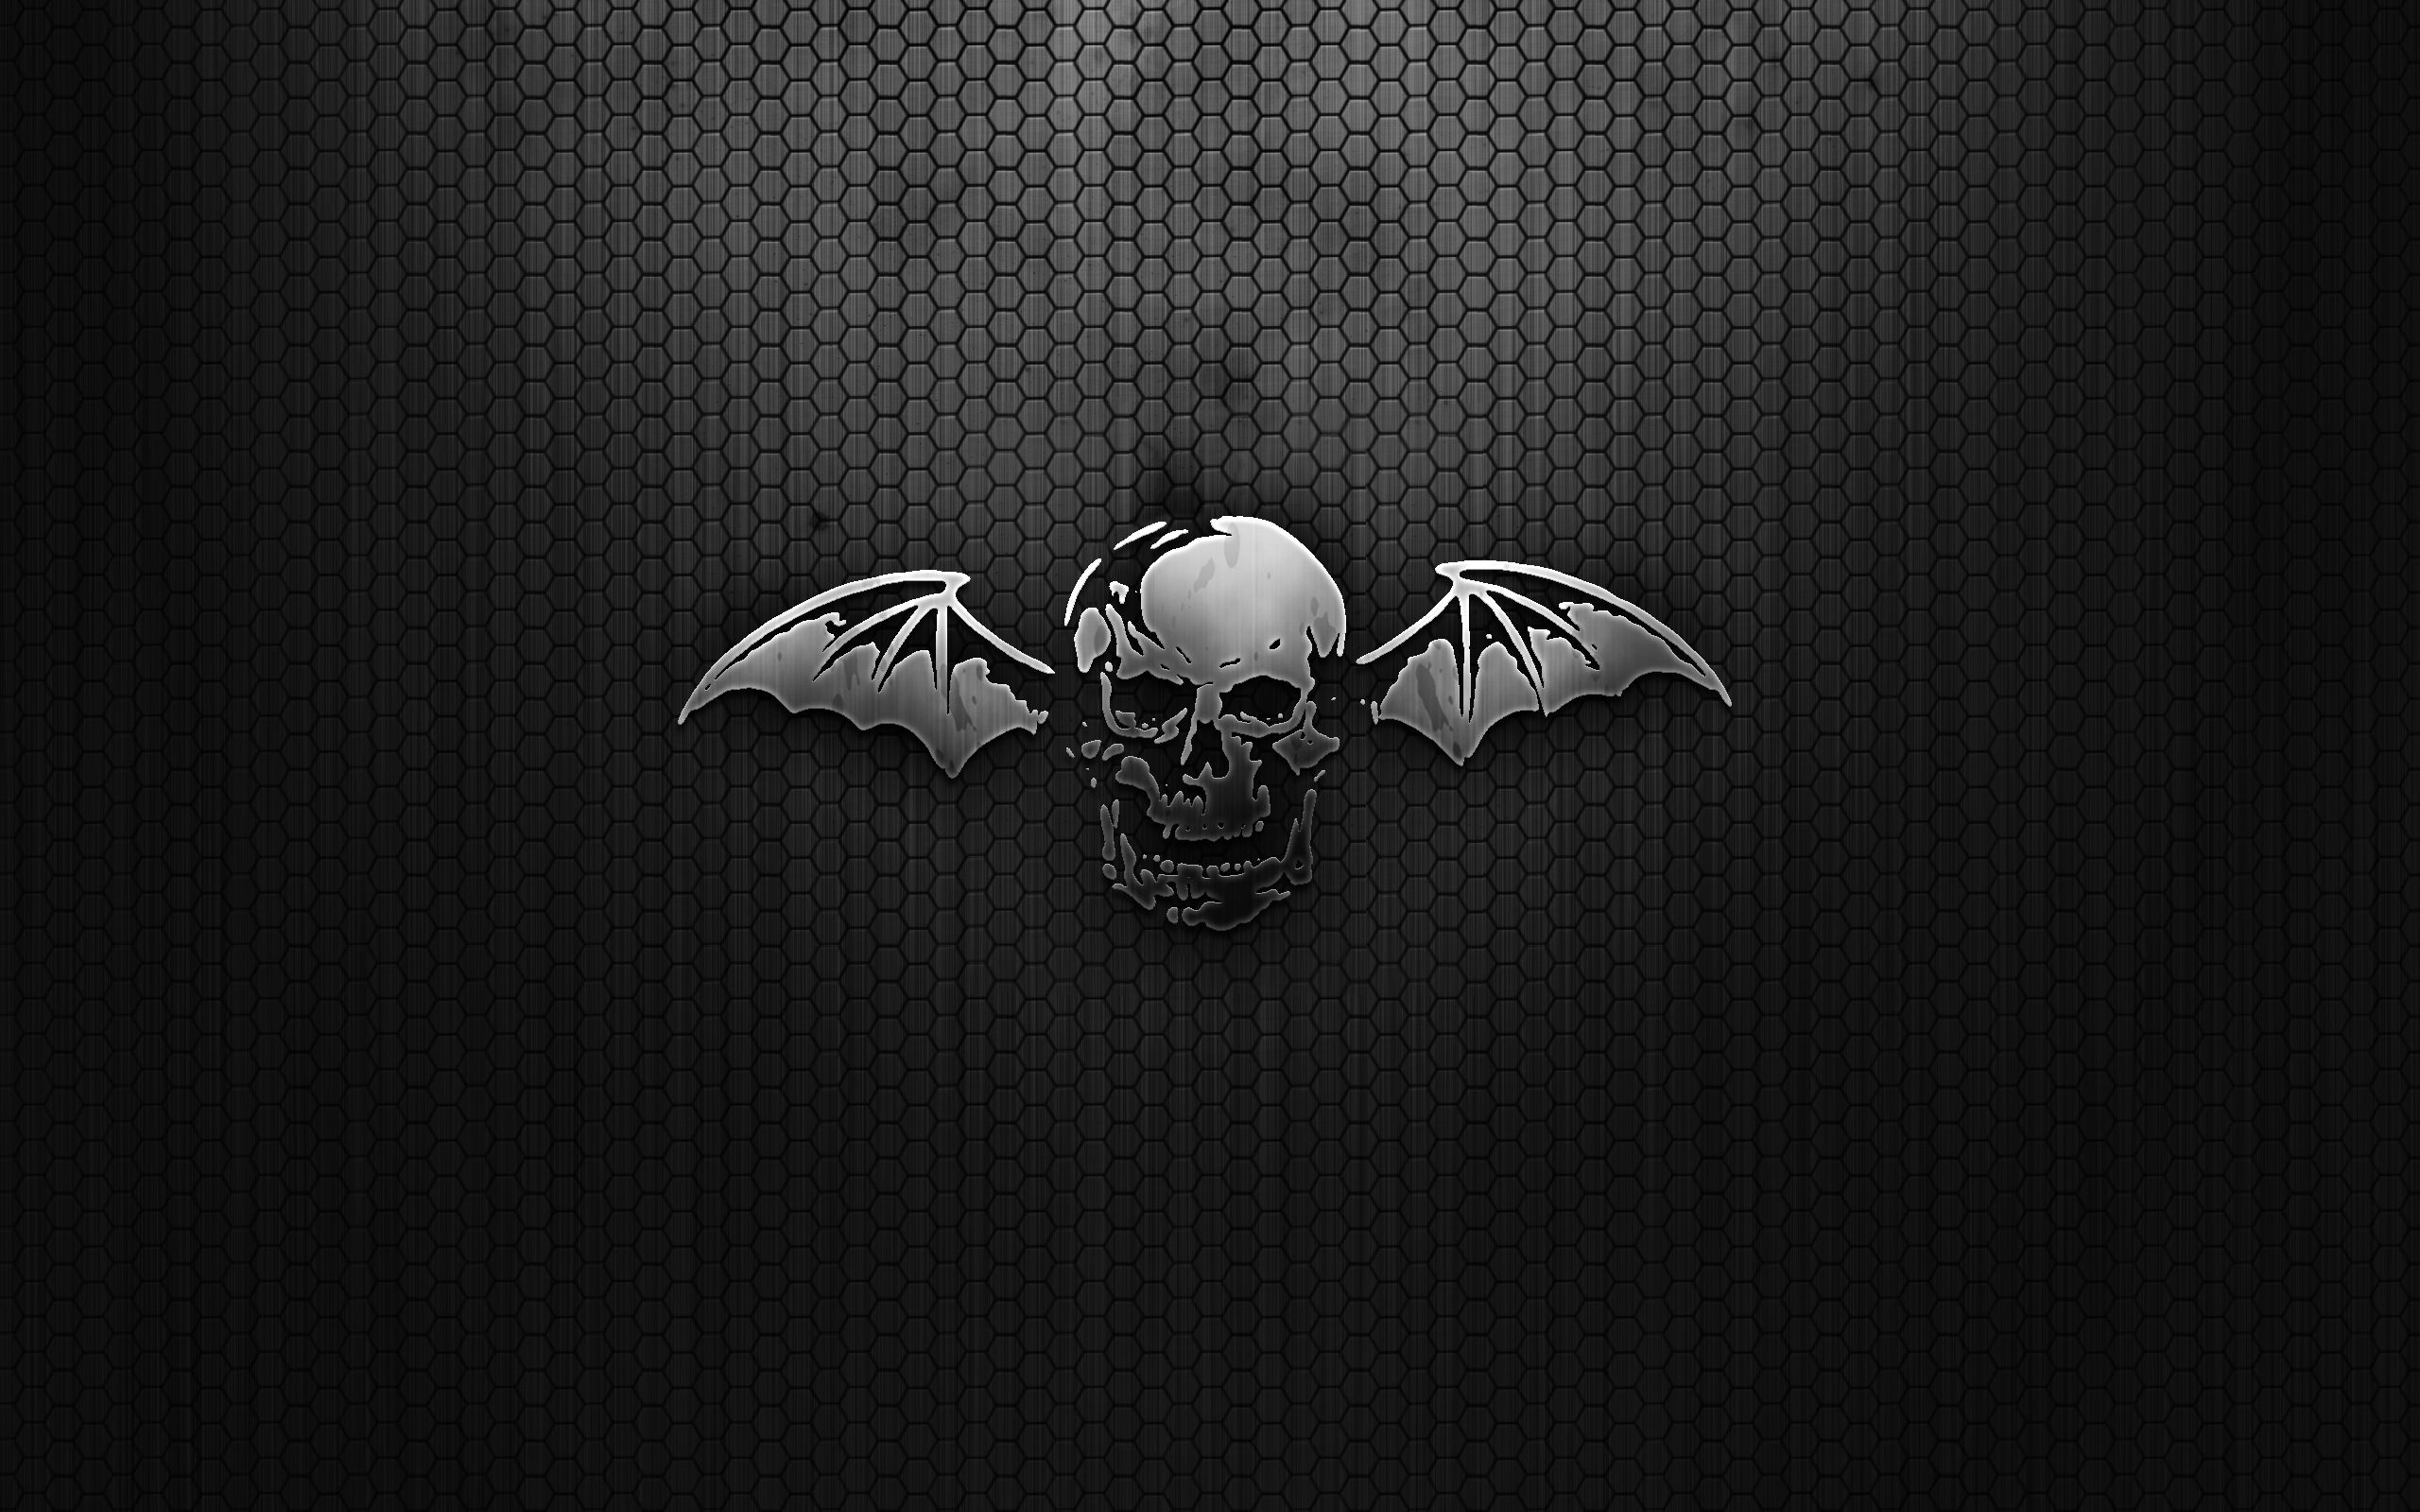 Avenged sevenfold wallpaper hd 5fdphail to the kingeddie avenged sevenfold wallpaper hd voltagebd